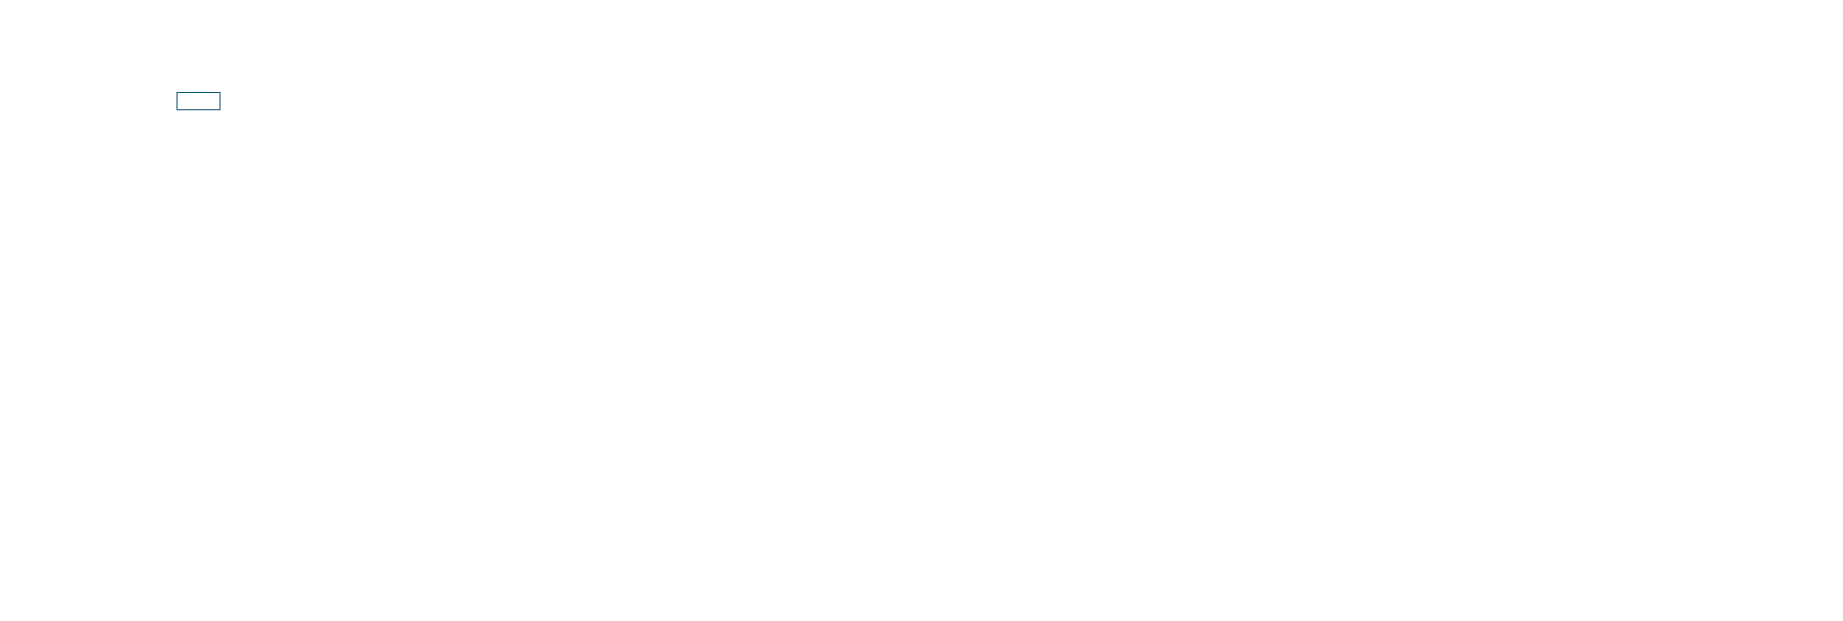 Southern African Coal Processing Society